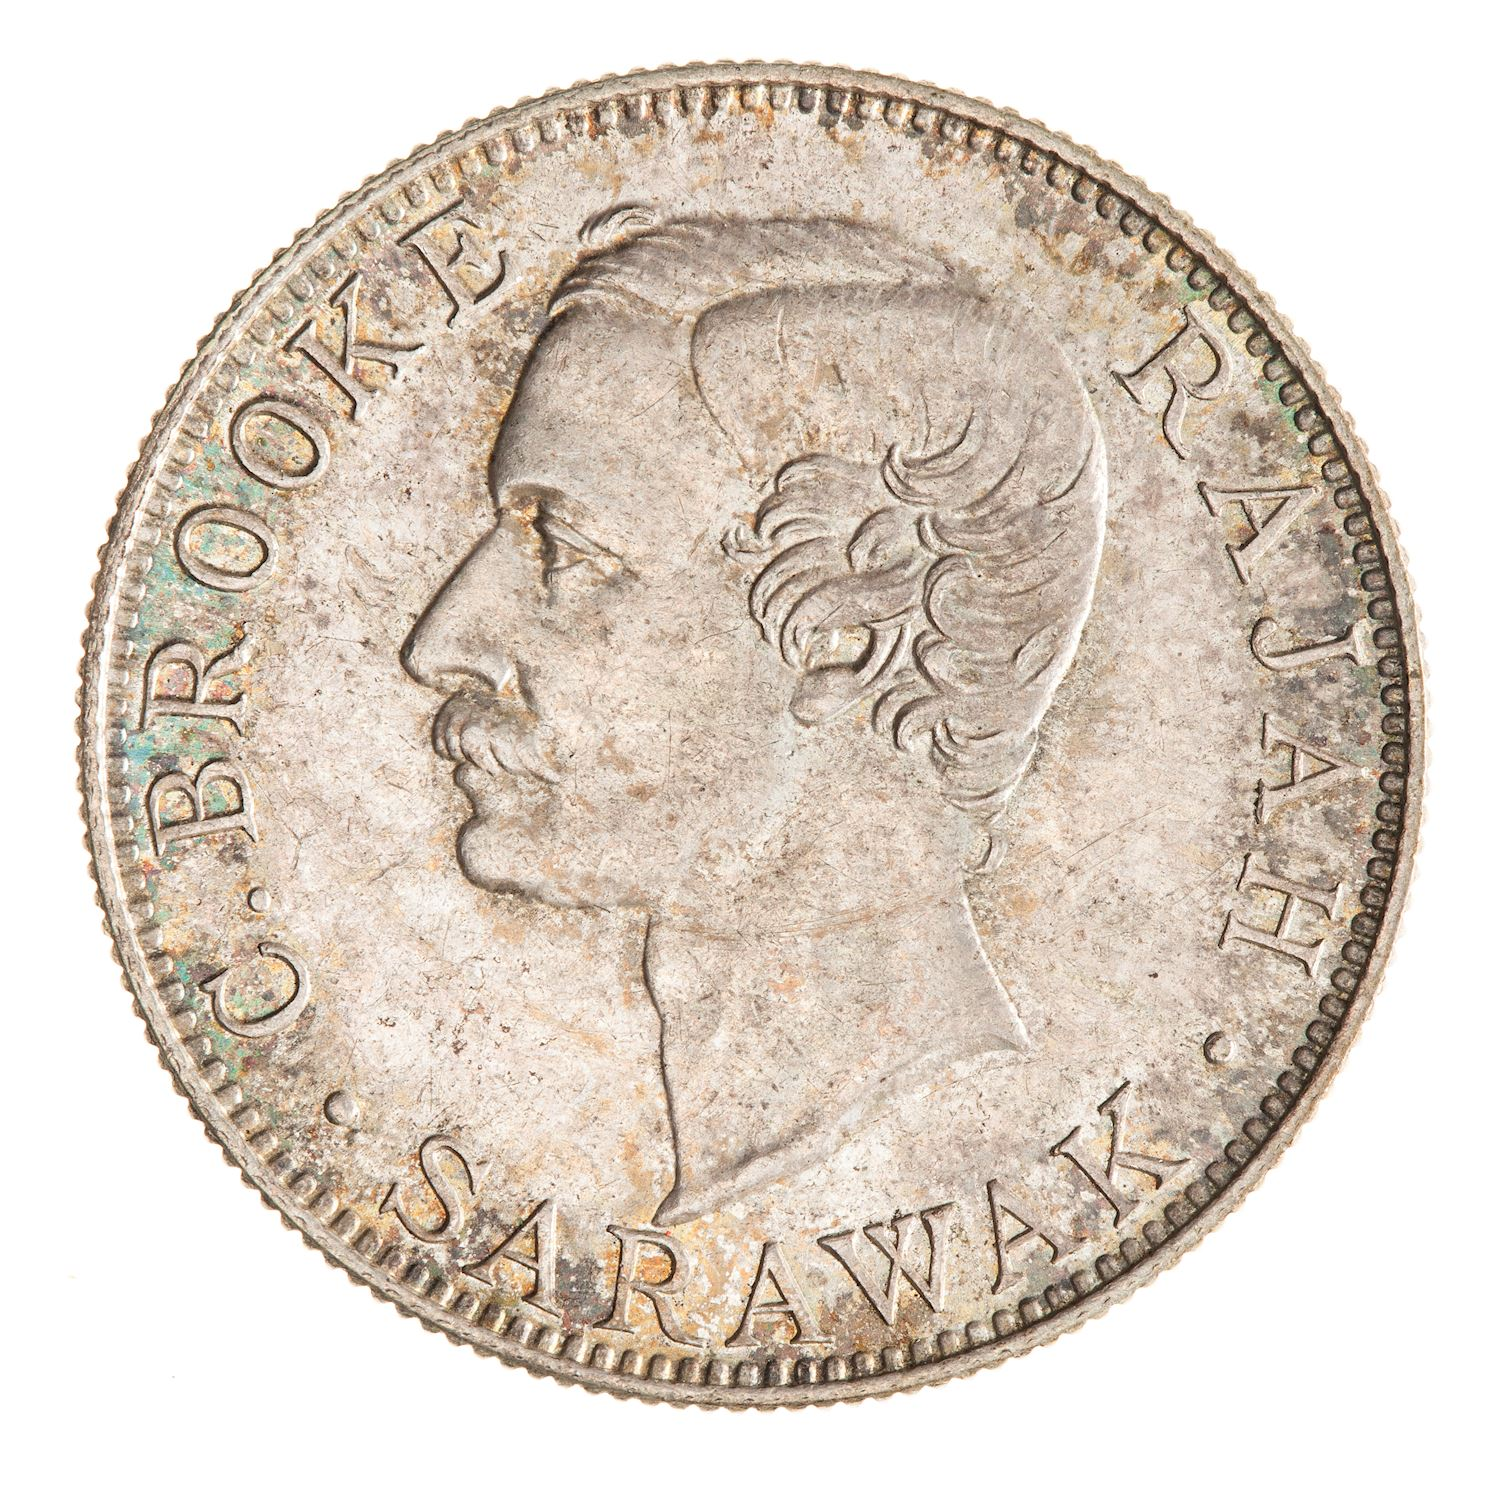 Fifty Cents 1900: Photo Coin - 50 Cents, Sarawak, 1900